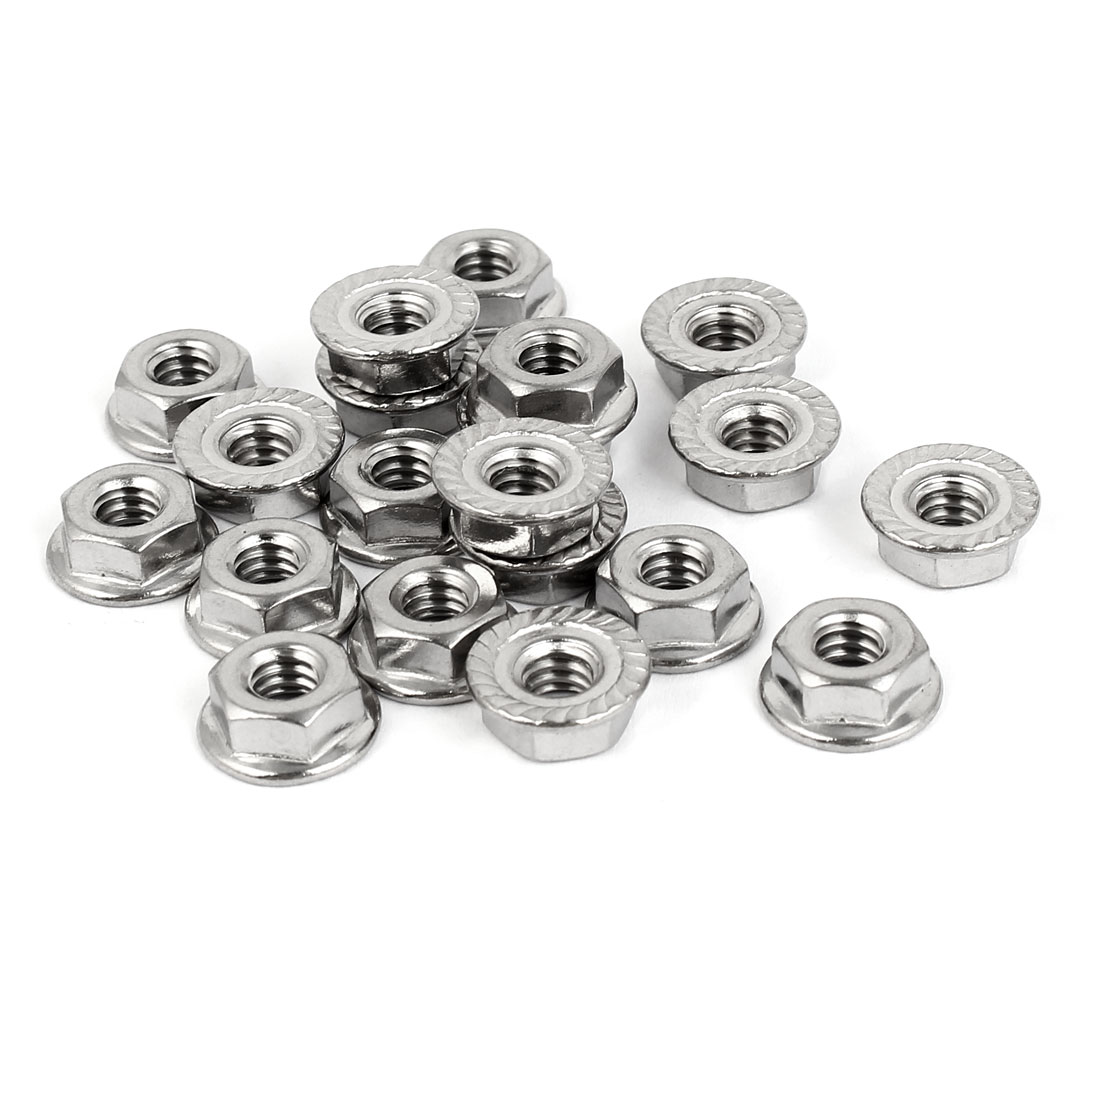 "1/4""-20 304 Stainless Steel Serrated Flange Hex Machine Screw Lock Nuts 20pcs"